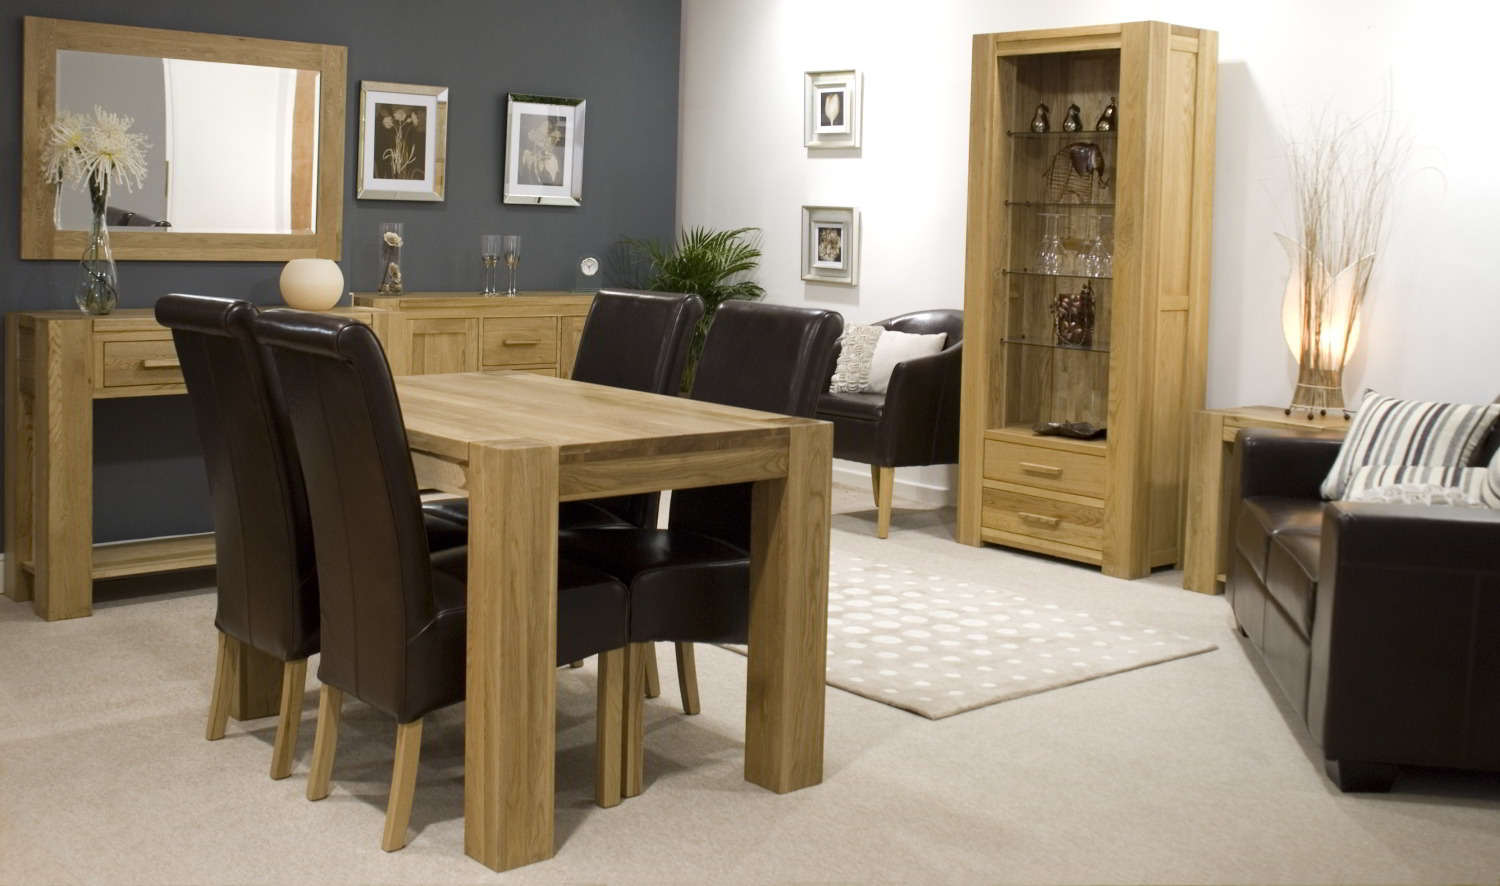 Pemberton solid oak furniture small living room office for Small dining hall decoration